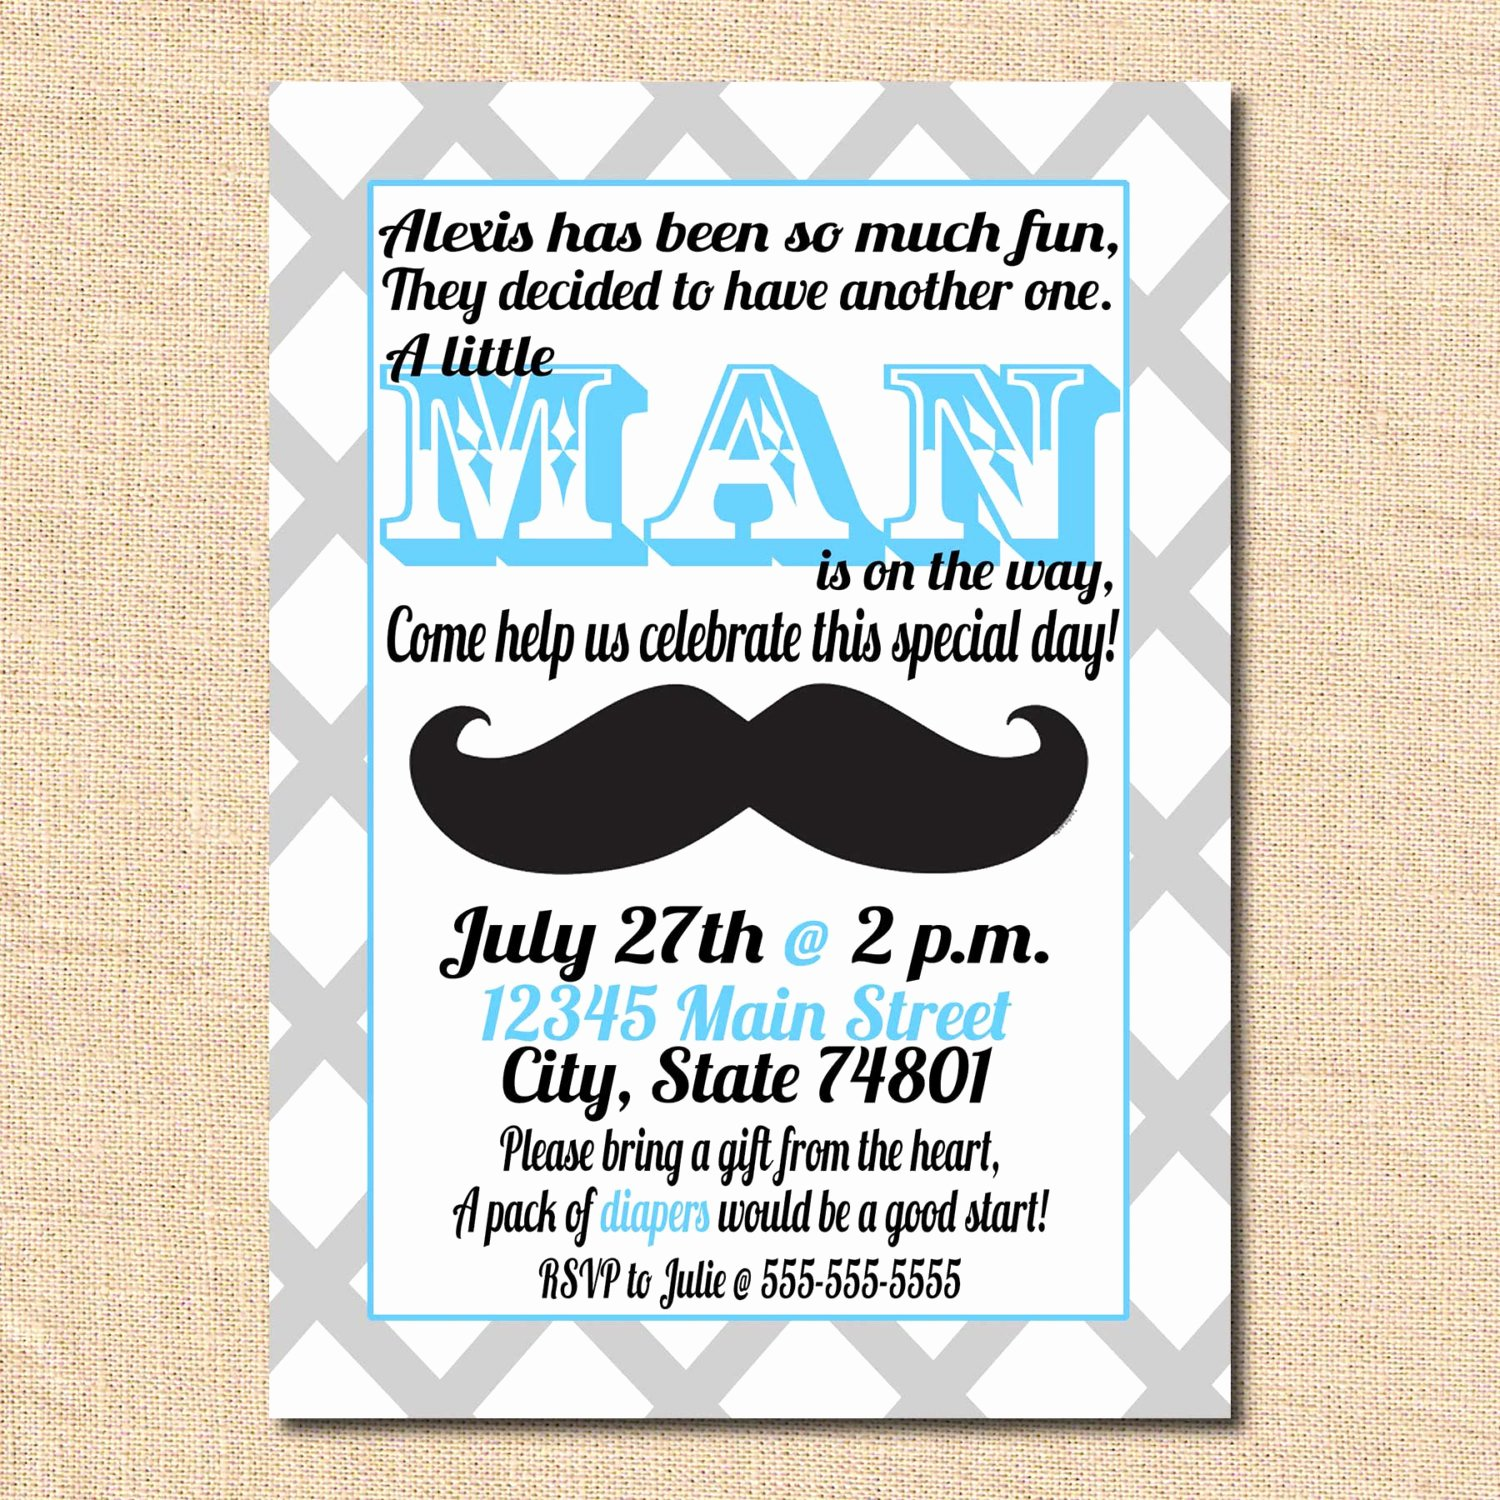 Mustache Baby Shower Invitations Templates Luxury Mustache Baby Shower Invitations Image